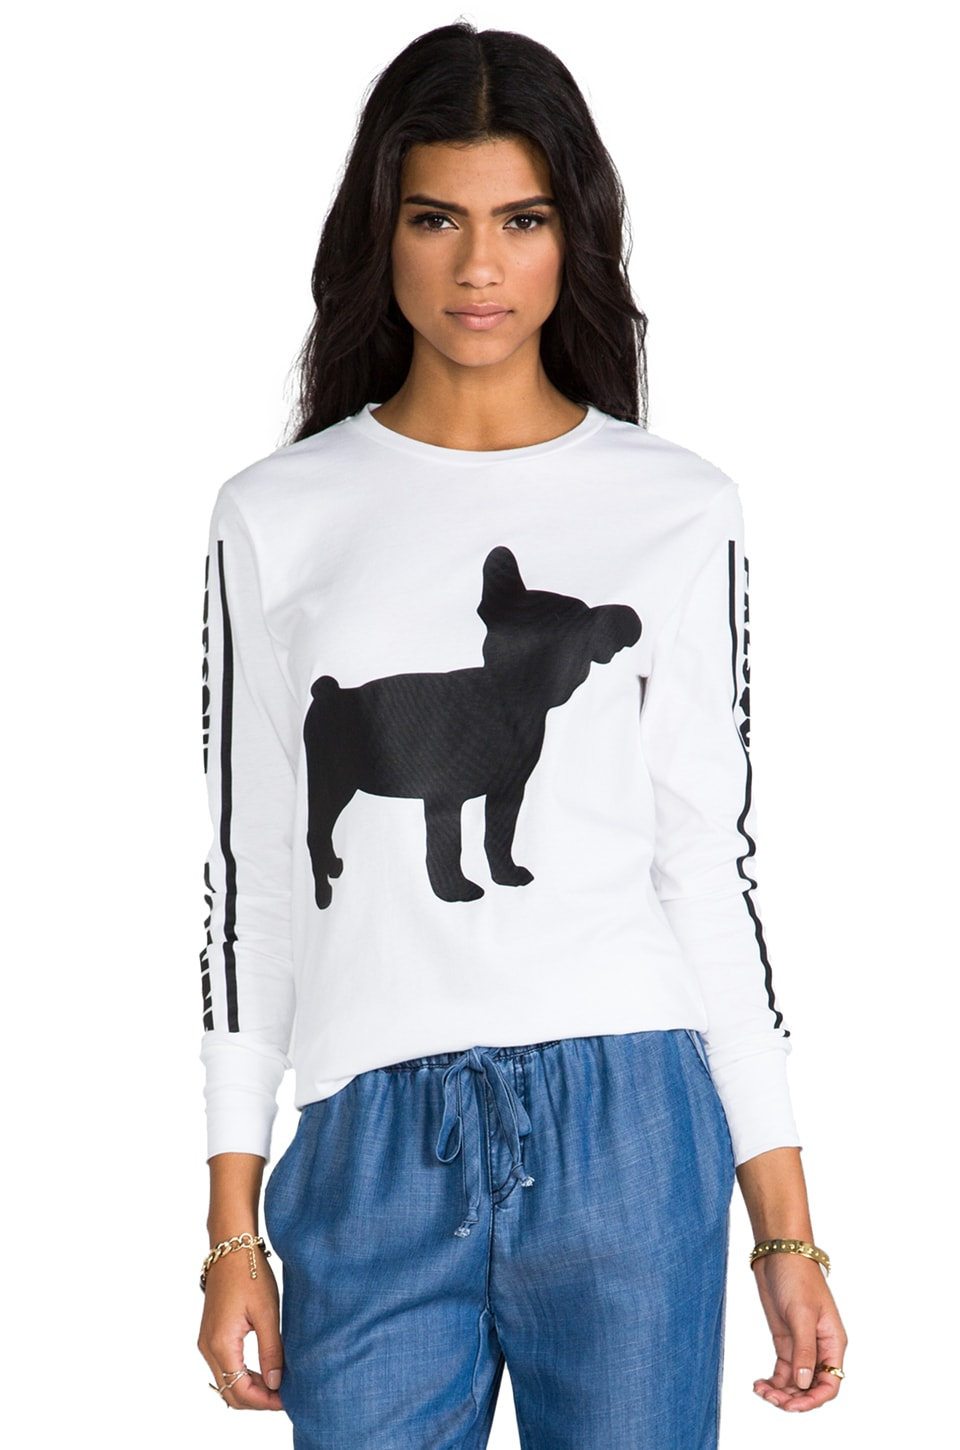 etre cecile Big Frenchie Long Sleeve T-Shirt in White/Black